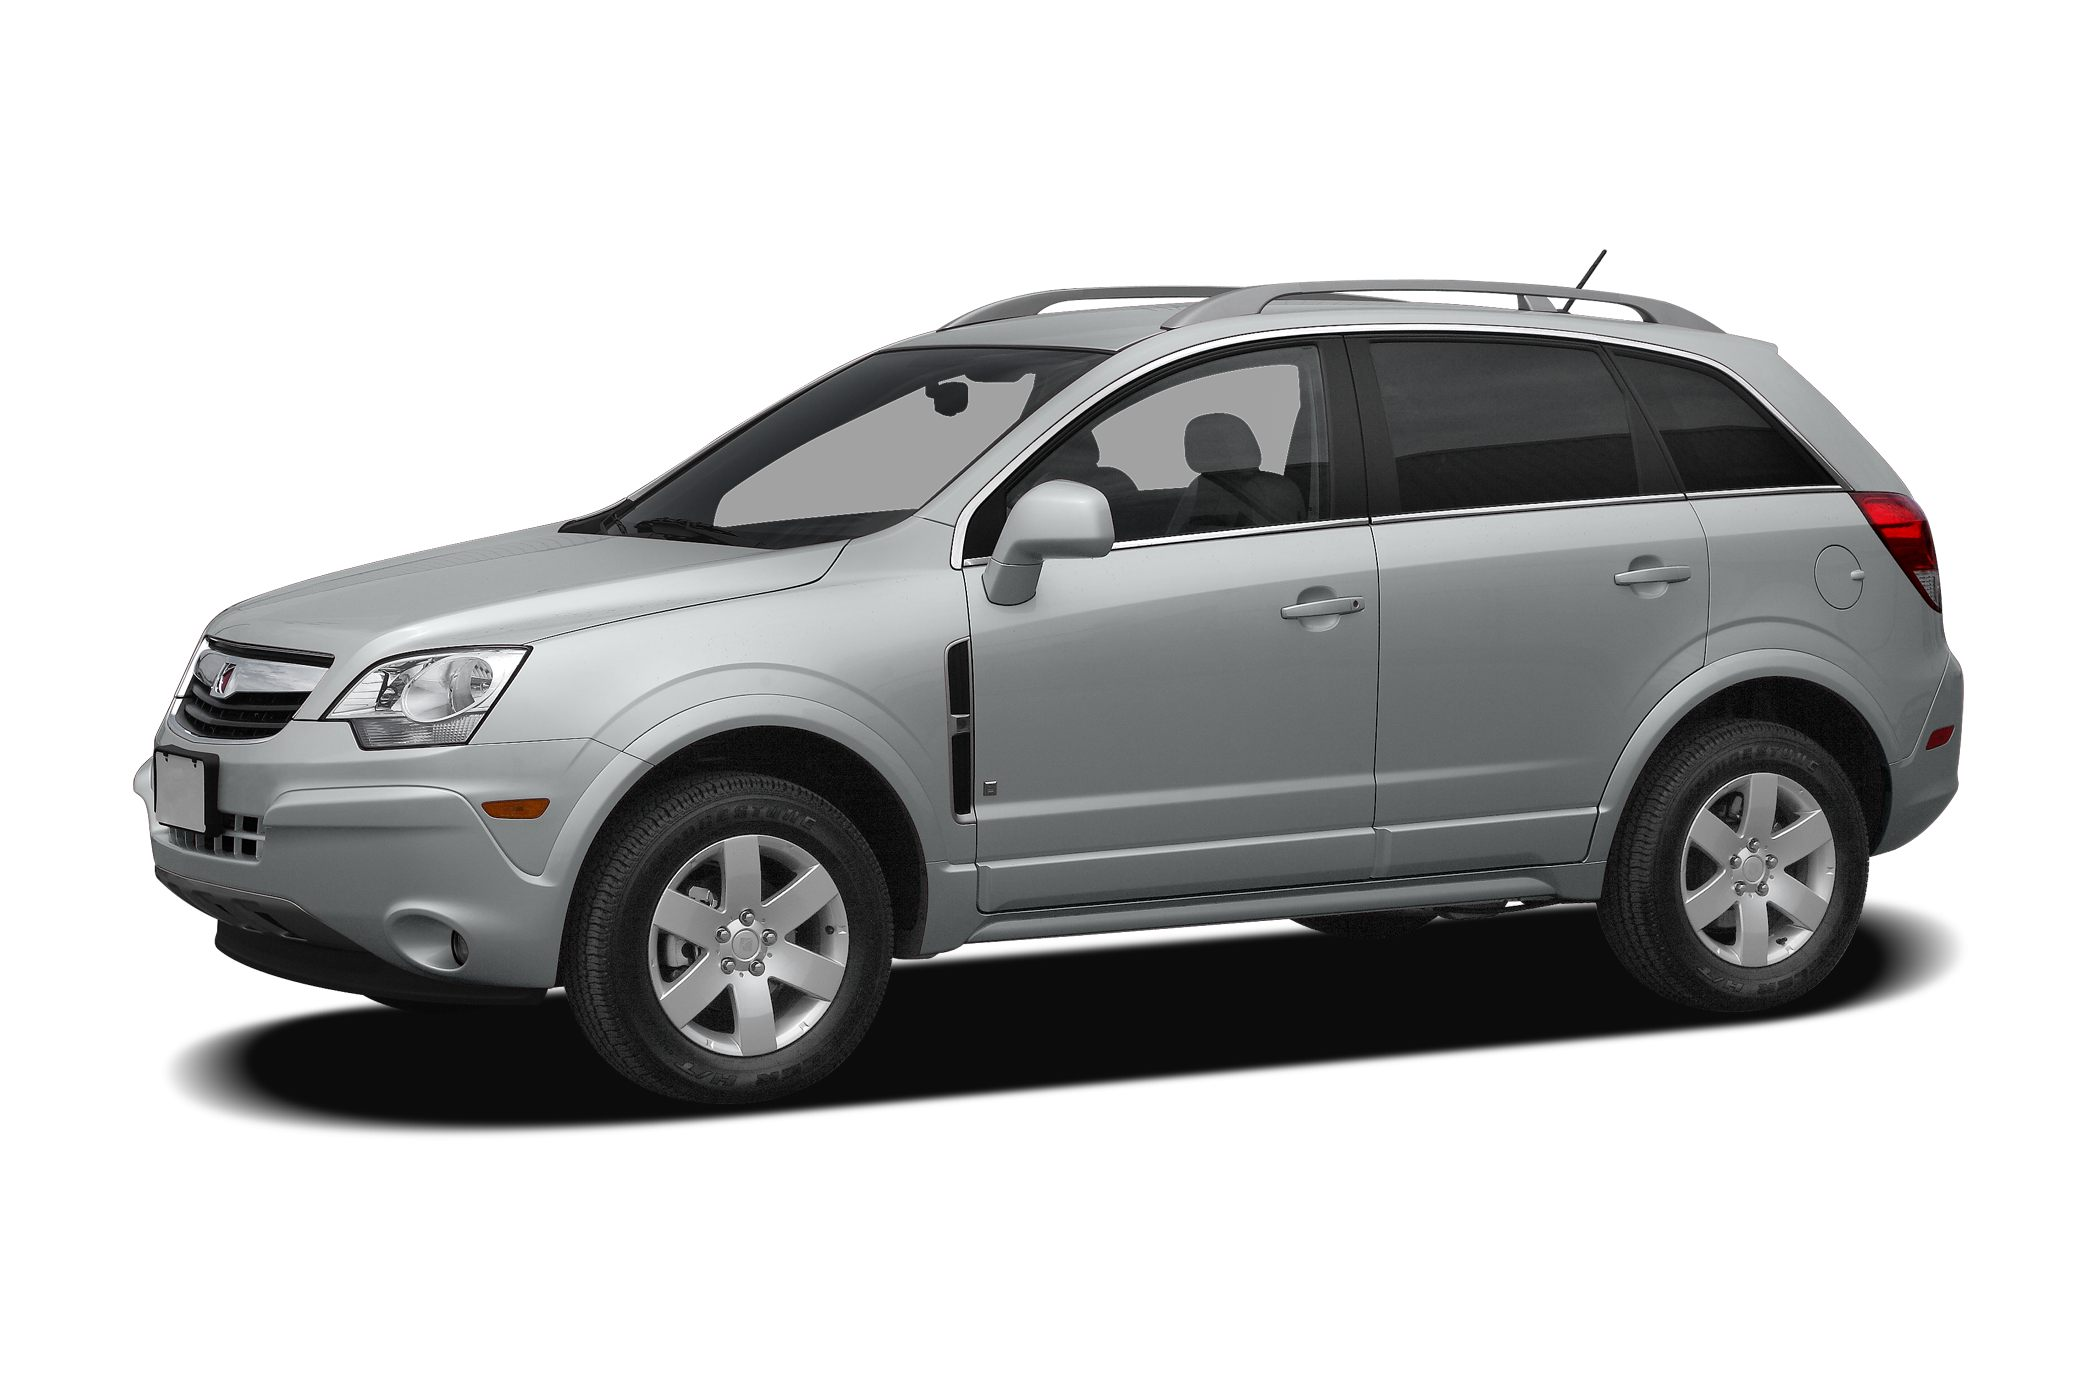 2009 Saturn VUE XE Miles 98383Color White Stock 9S524986 VIN 3GSCL33P49S524986